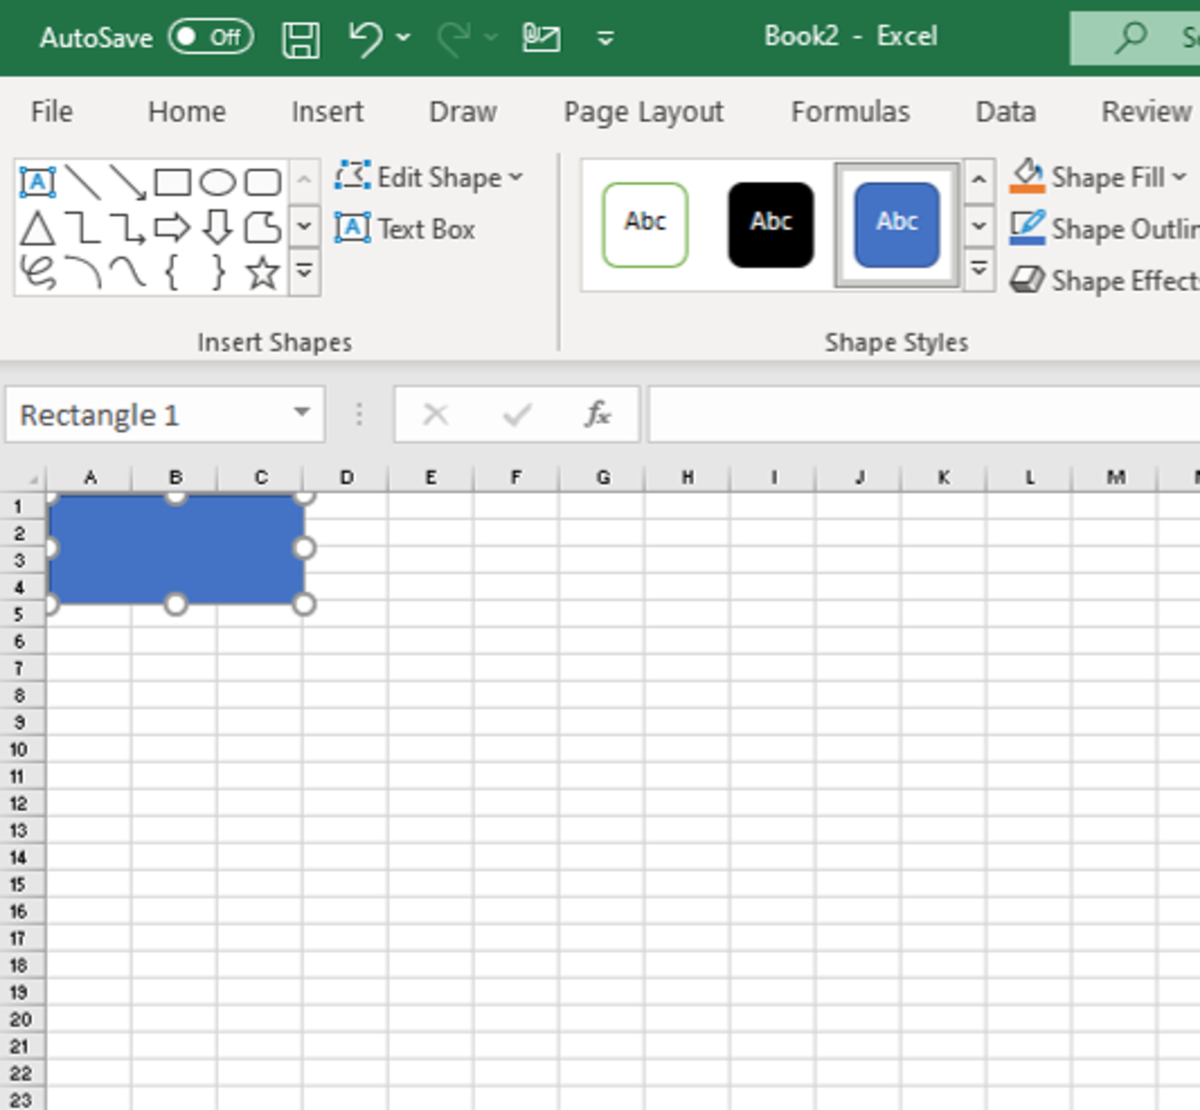 create-buttons-to-open-worksheets-in-excel